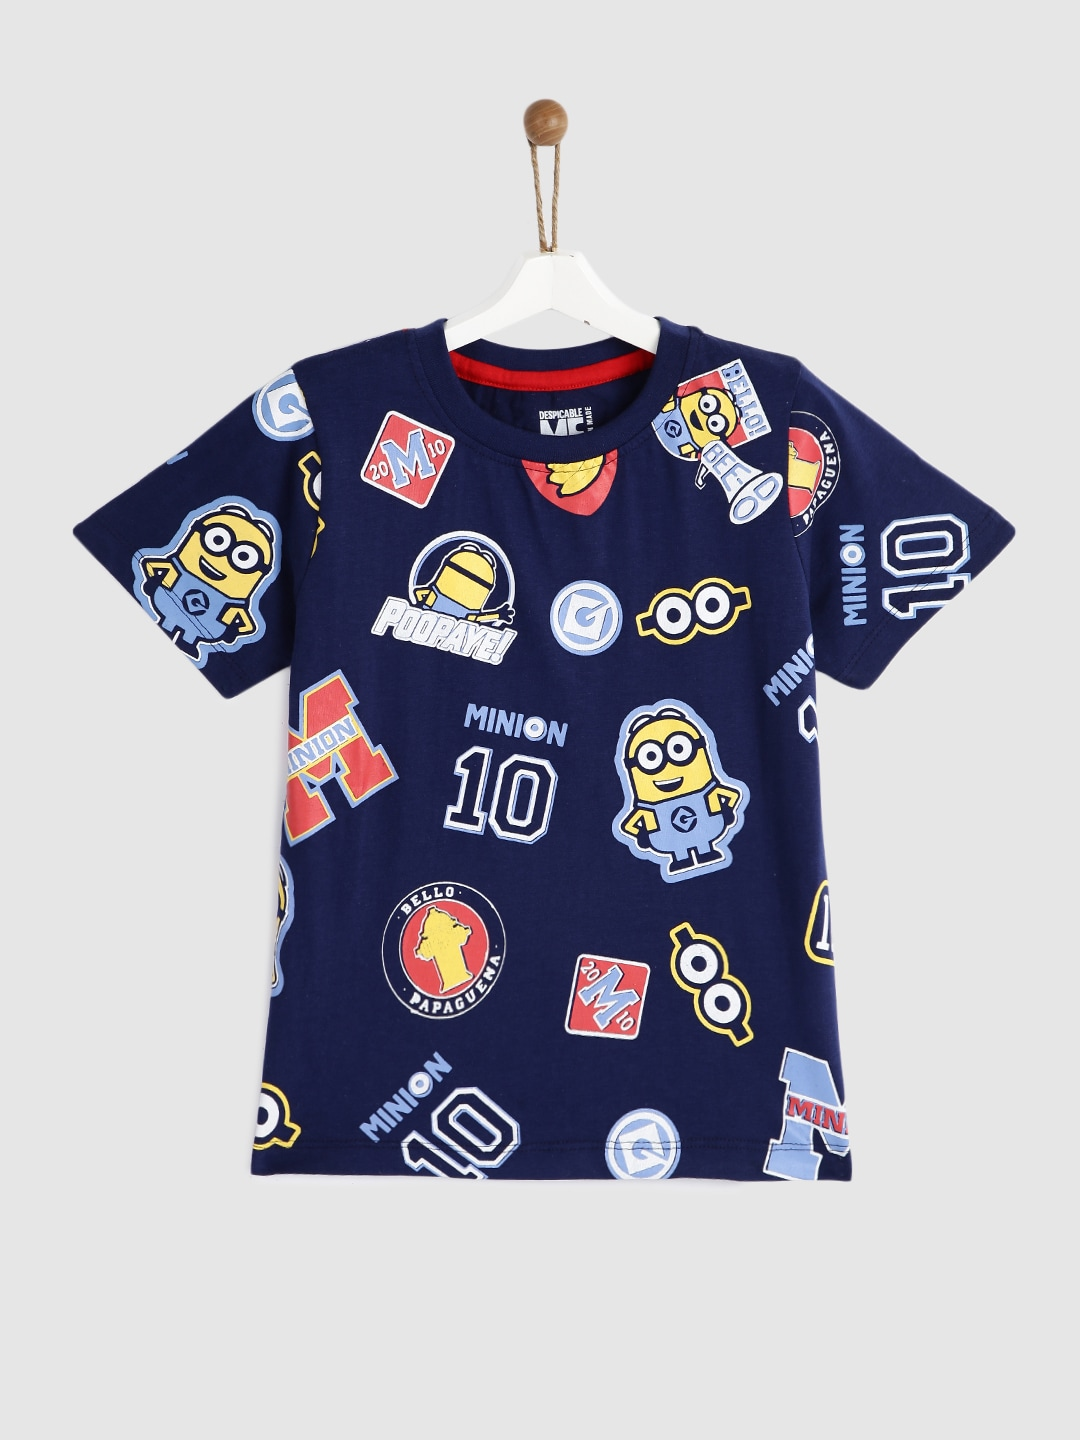 48e69dfc698 Boys T shirts - Buy T shirts for Boys online in India